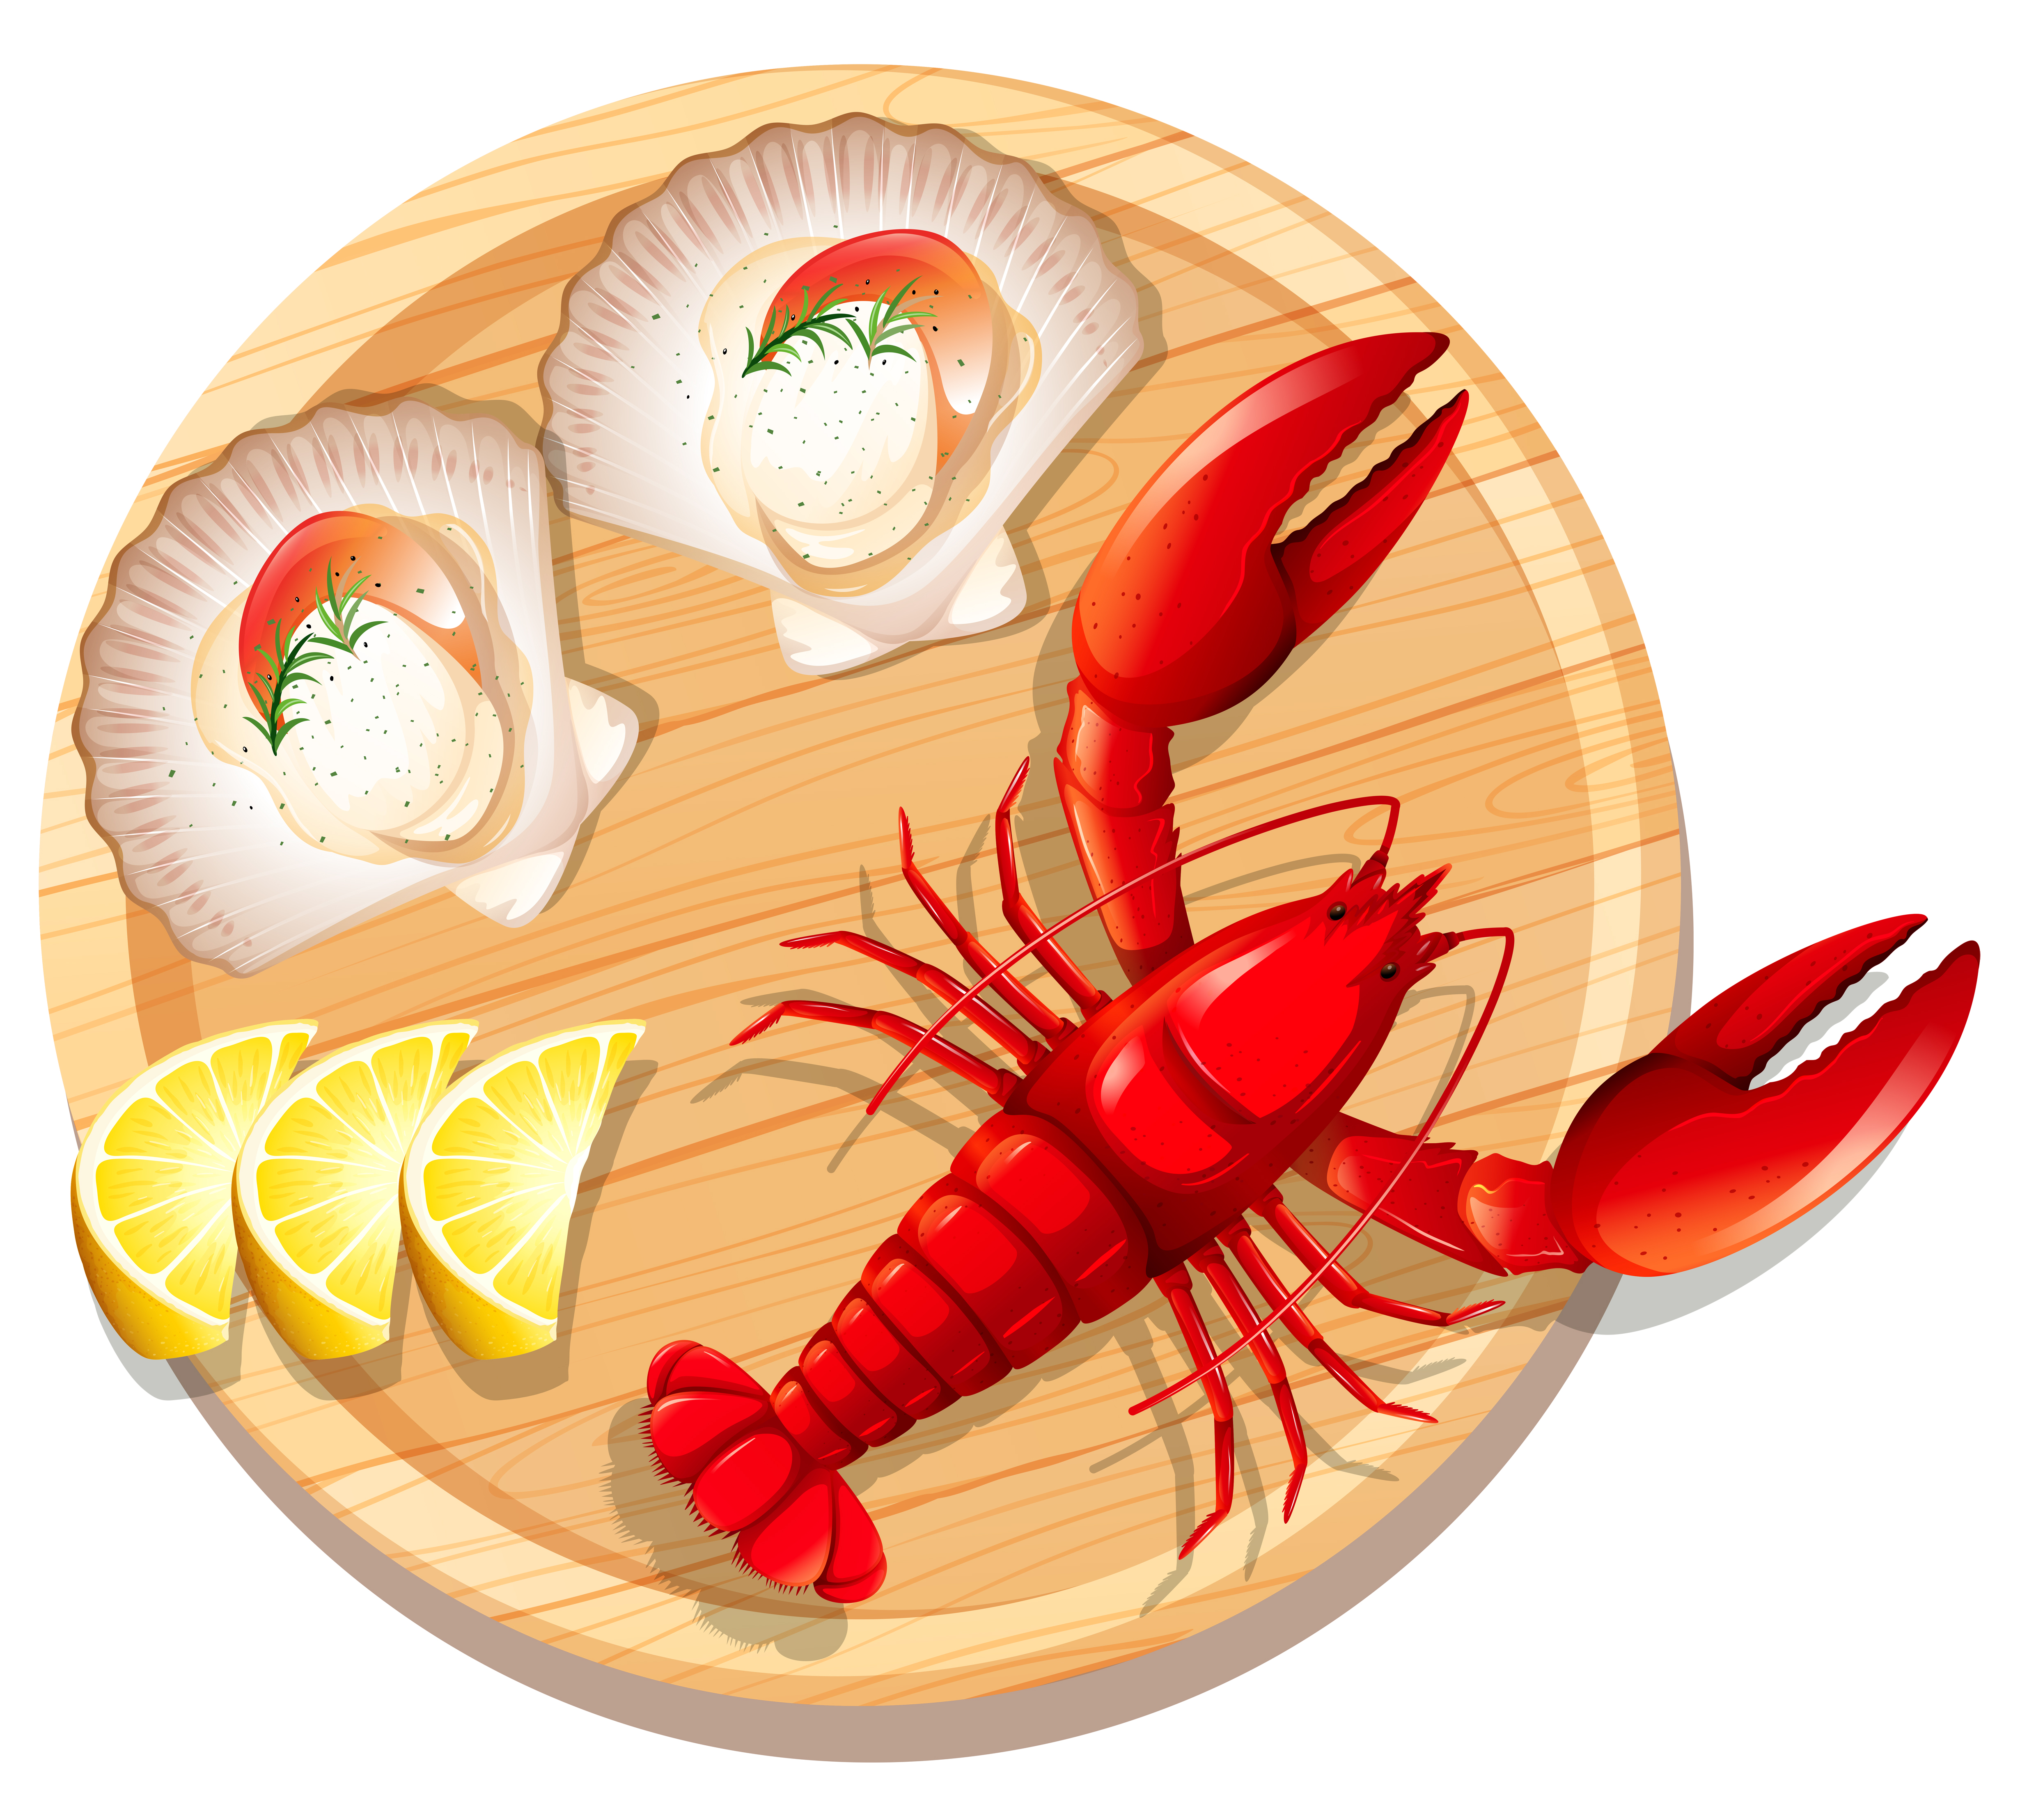 A Seafood Plate With Lobster And Scallop 292475 Vector Art